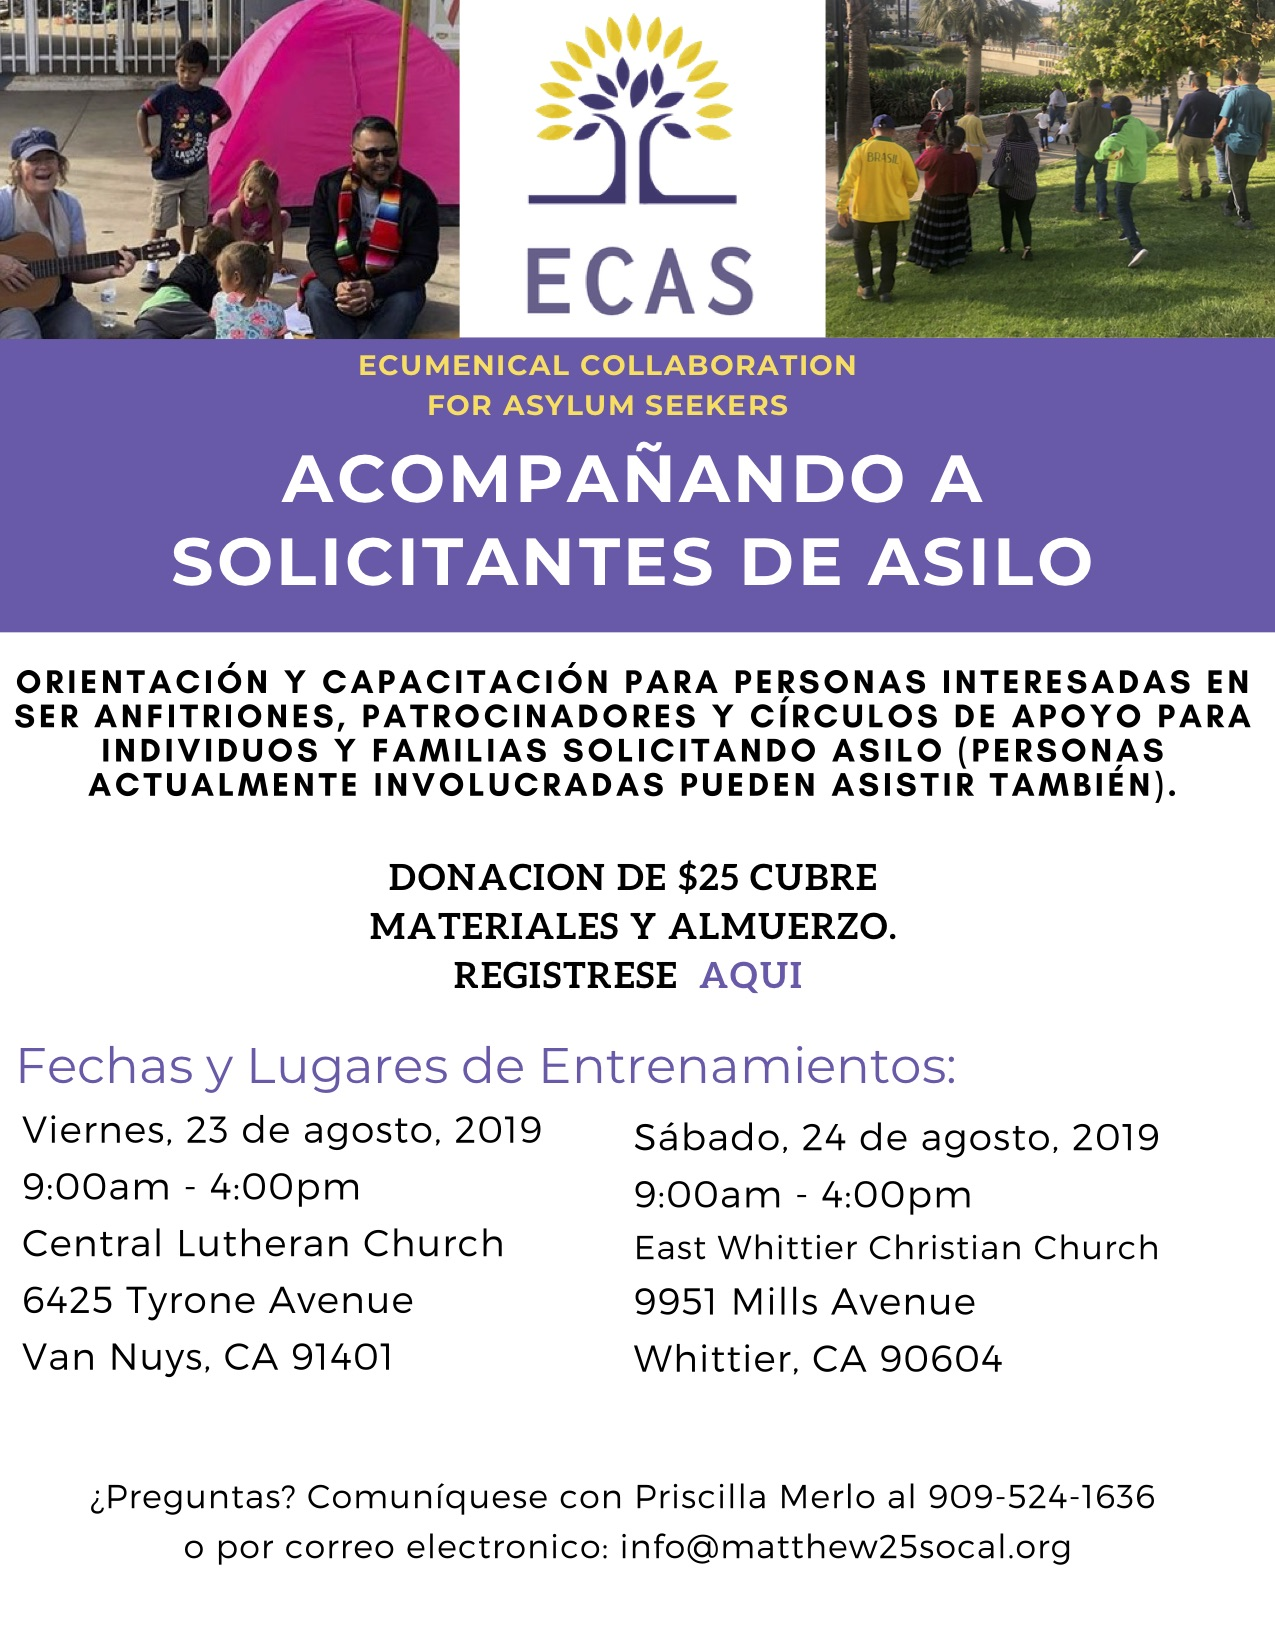 ECAS Training 8 2019 spanish.jpg